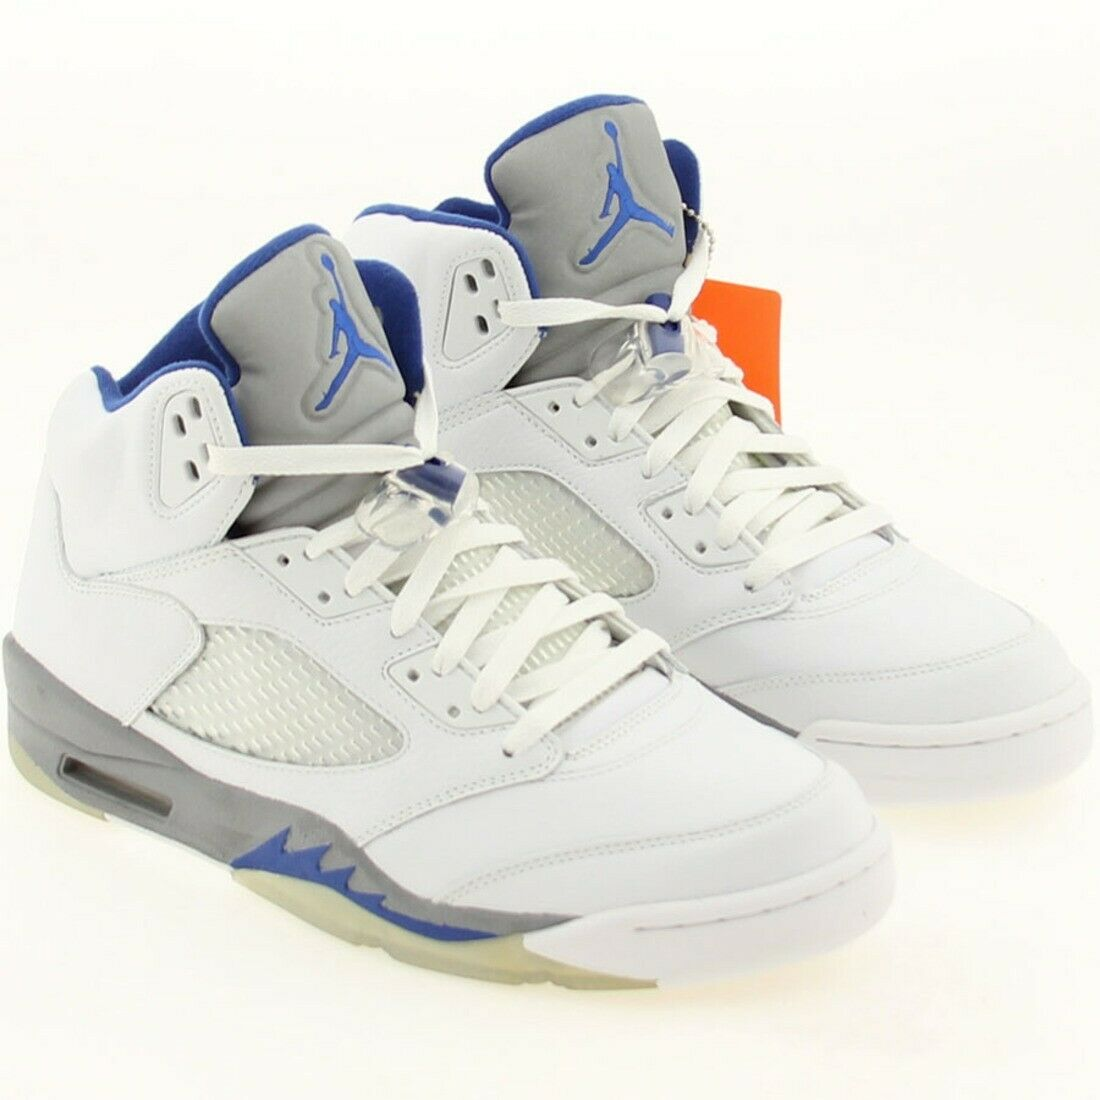 US sz 10.0 AIR JORDAN V 5  RETRO WHITE ROYAL STEALTH MEN SIZE 10.0